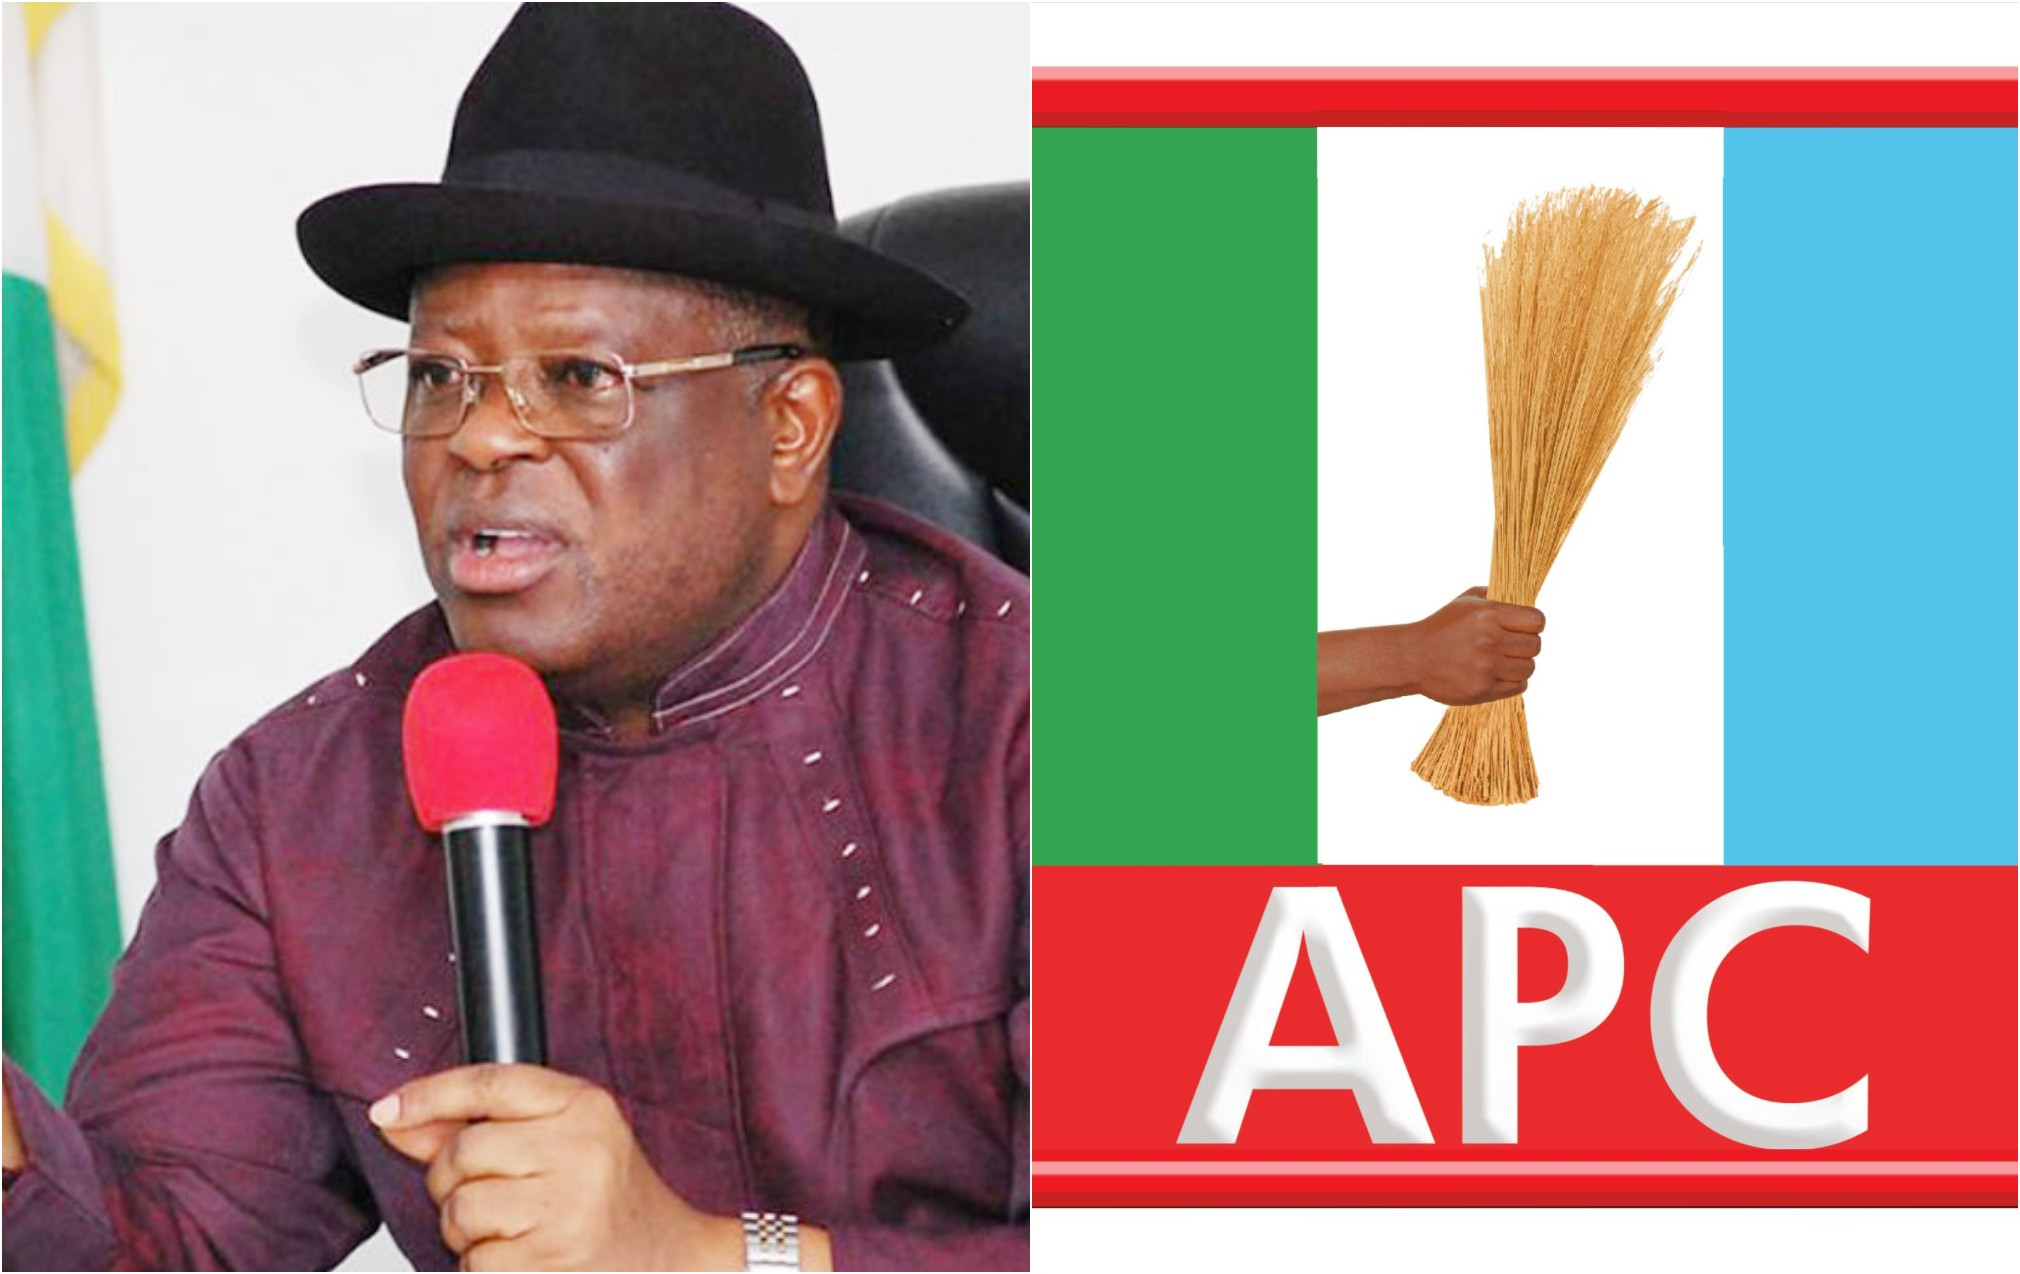 Governor Umahi is an APC mole – Edo PDP writes NWC as it condemns endorsement of APC's Governor Obaseki